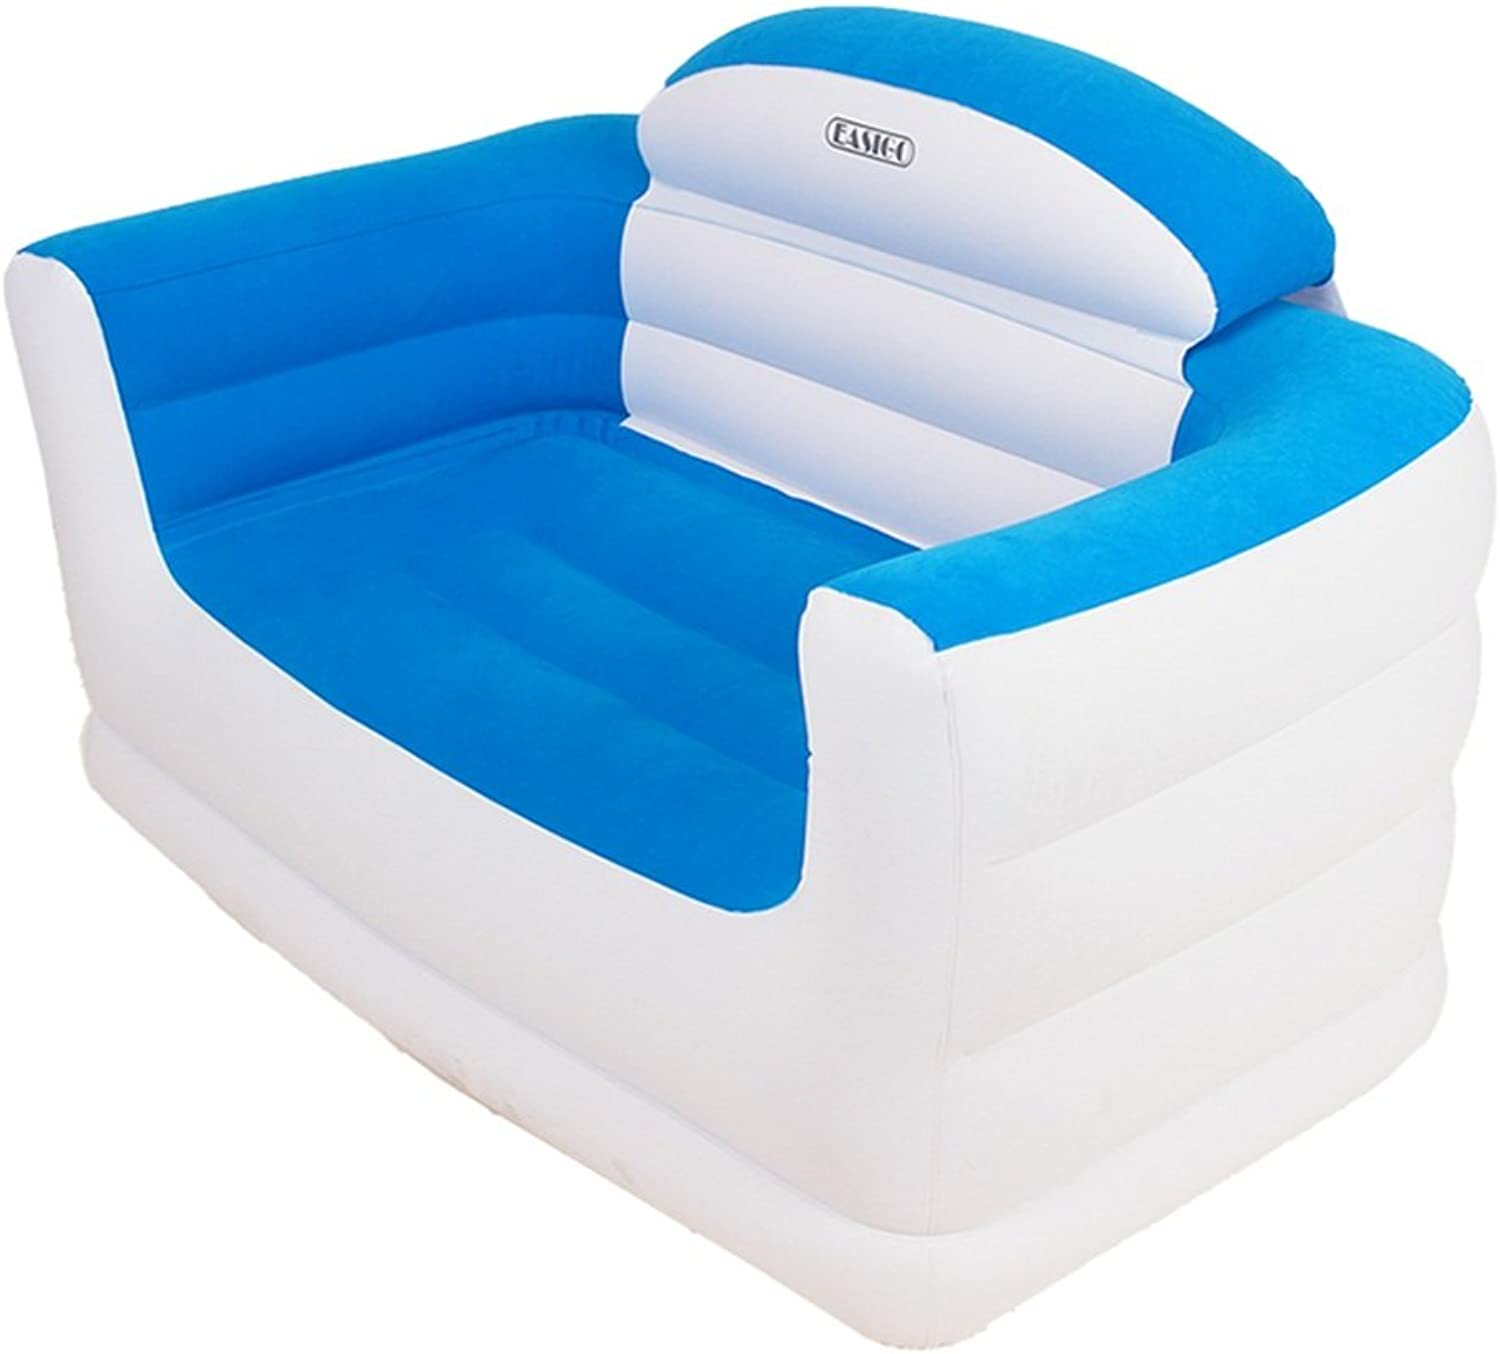 Beanbag, Inflatable Sofa Collapsible Flocking Simple Sofa Leisure Chair